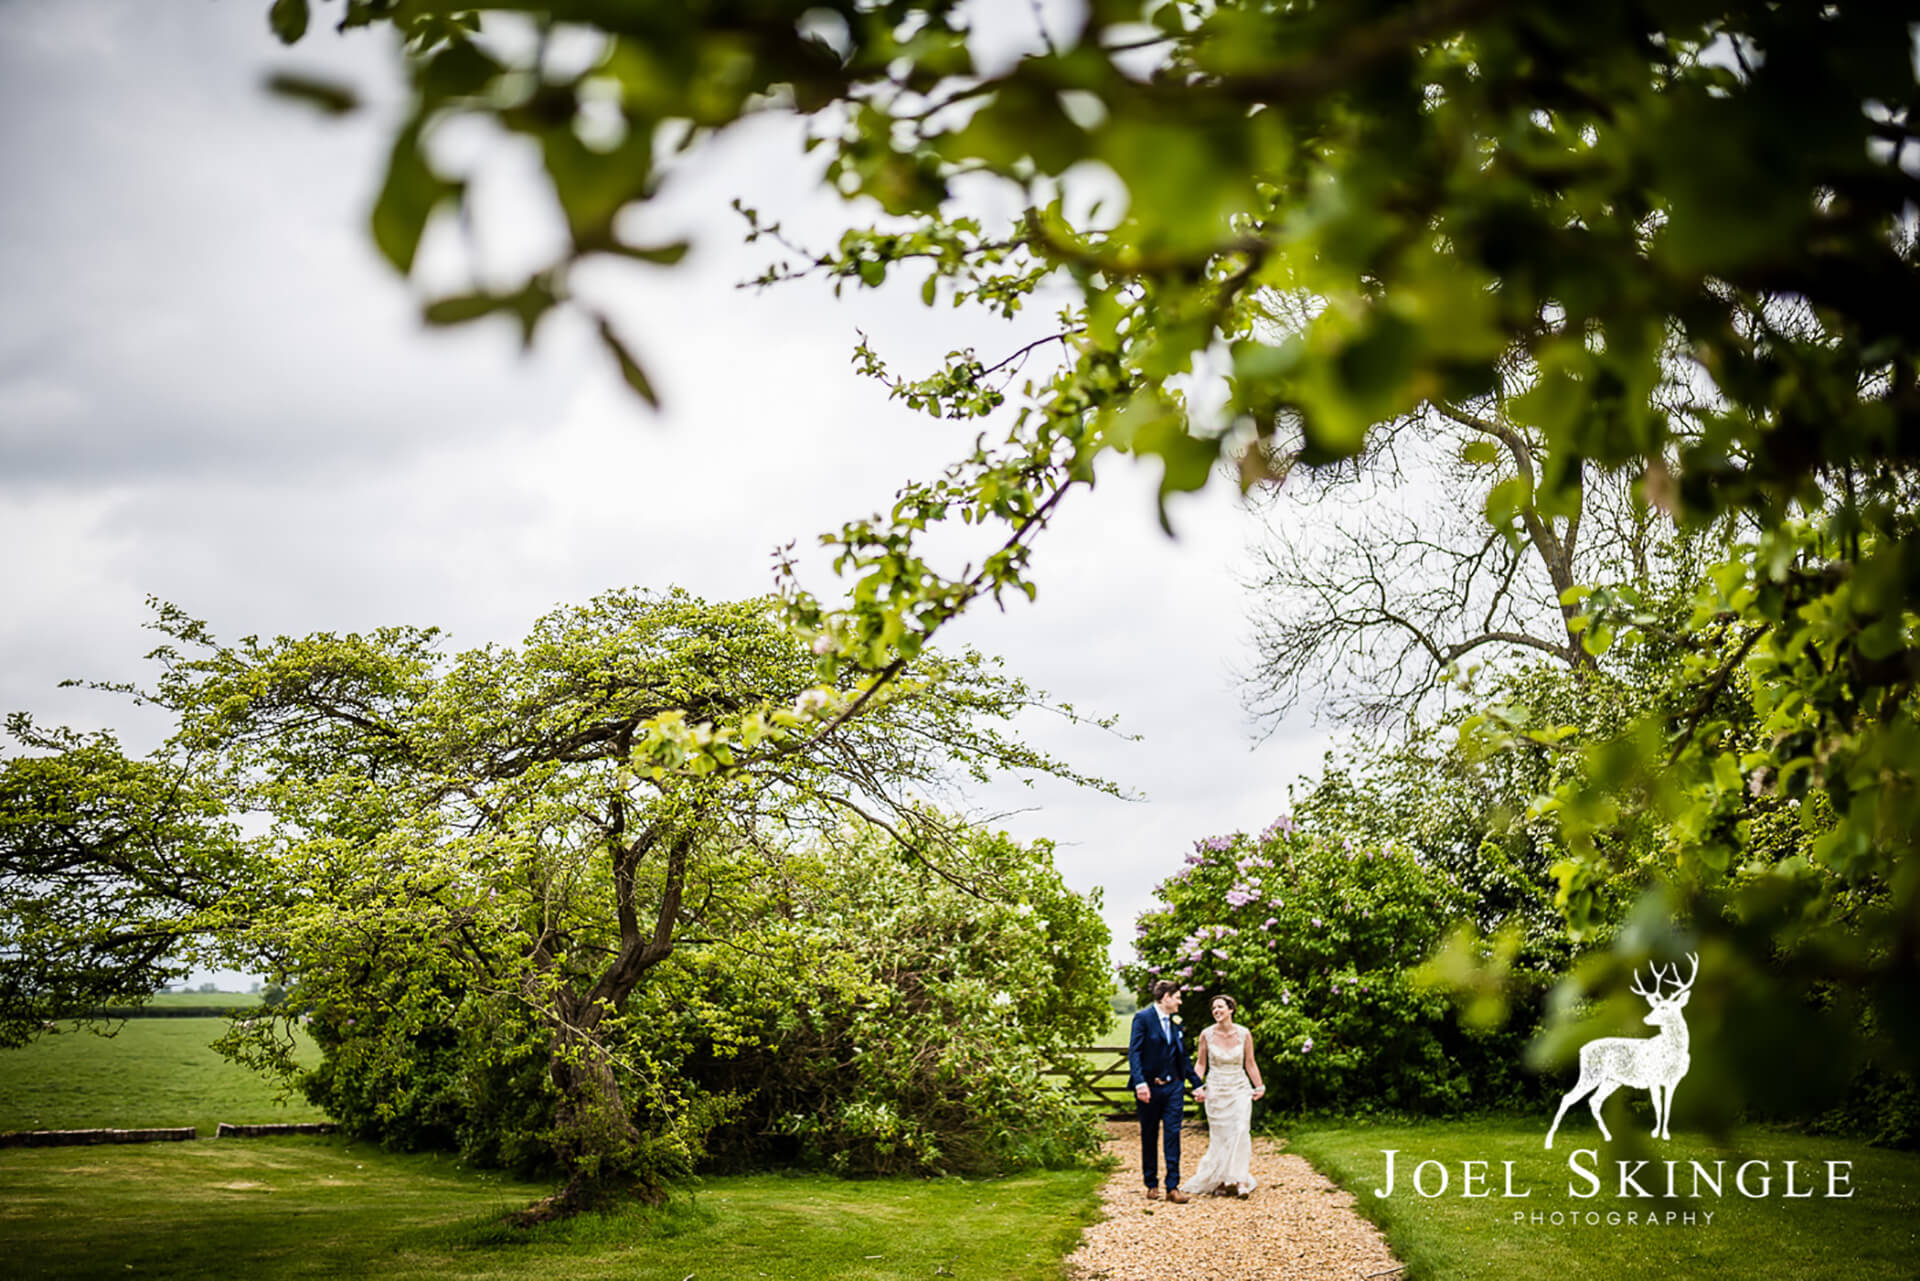 "<a href=""http://www.joelskinglephotography.co.uk/"" target=""_blank"">Joel Skingle</a>'s beautiful shot of Stacey and Pete."